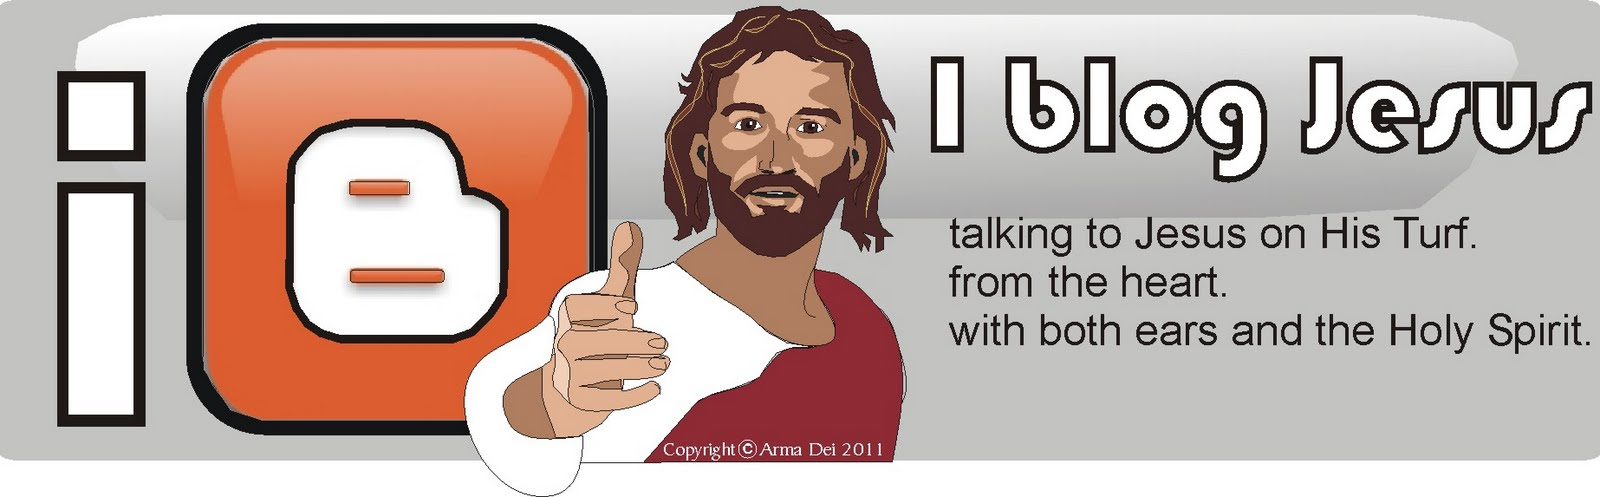 i blog Jesus